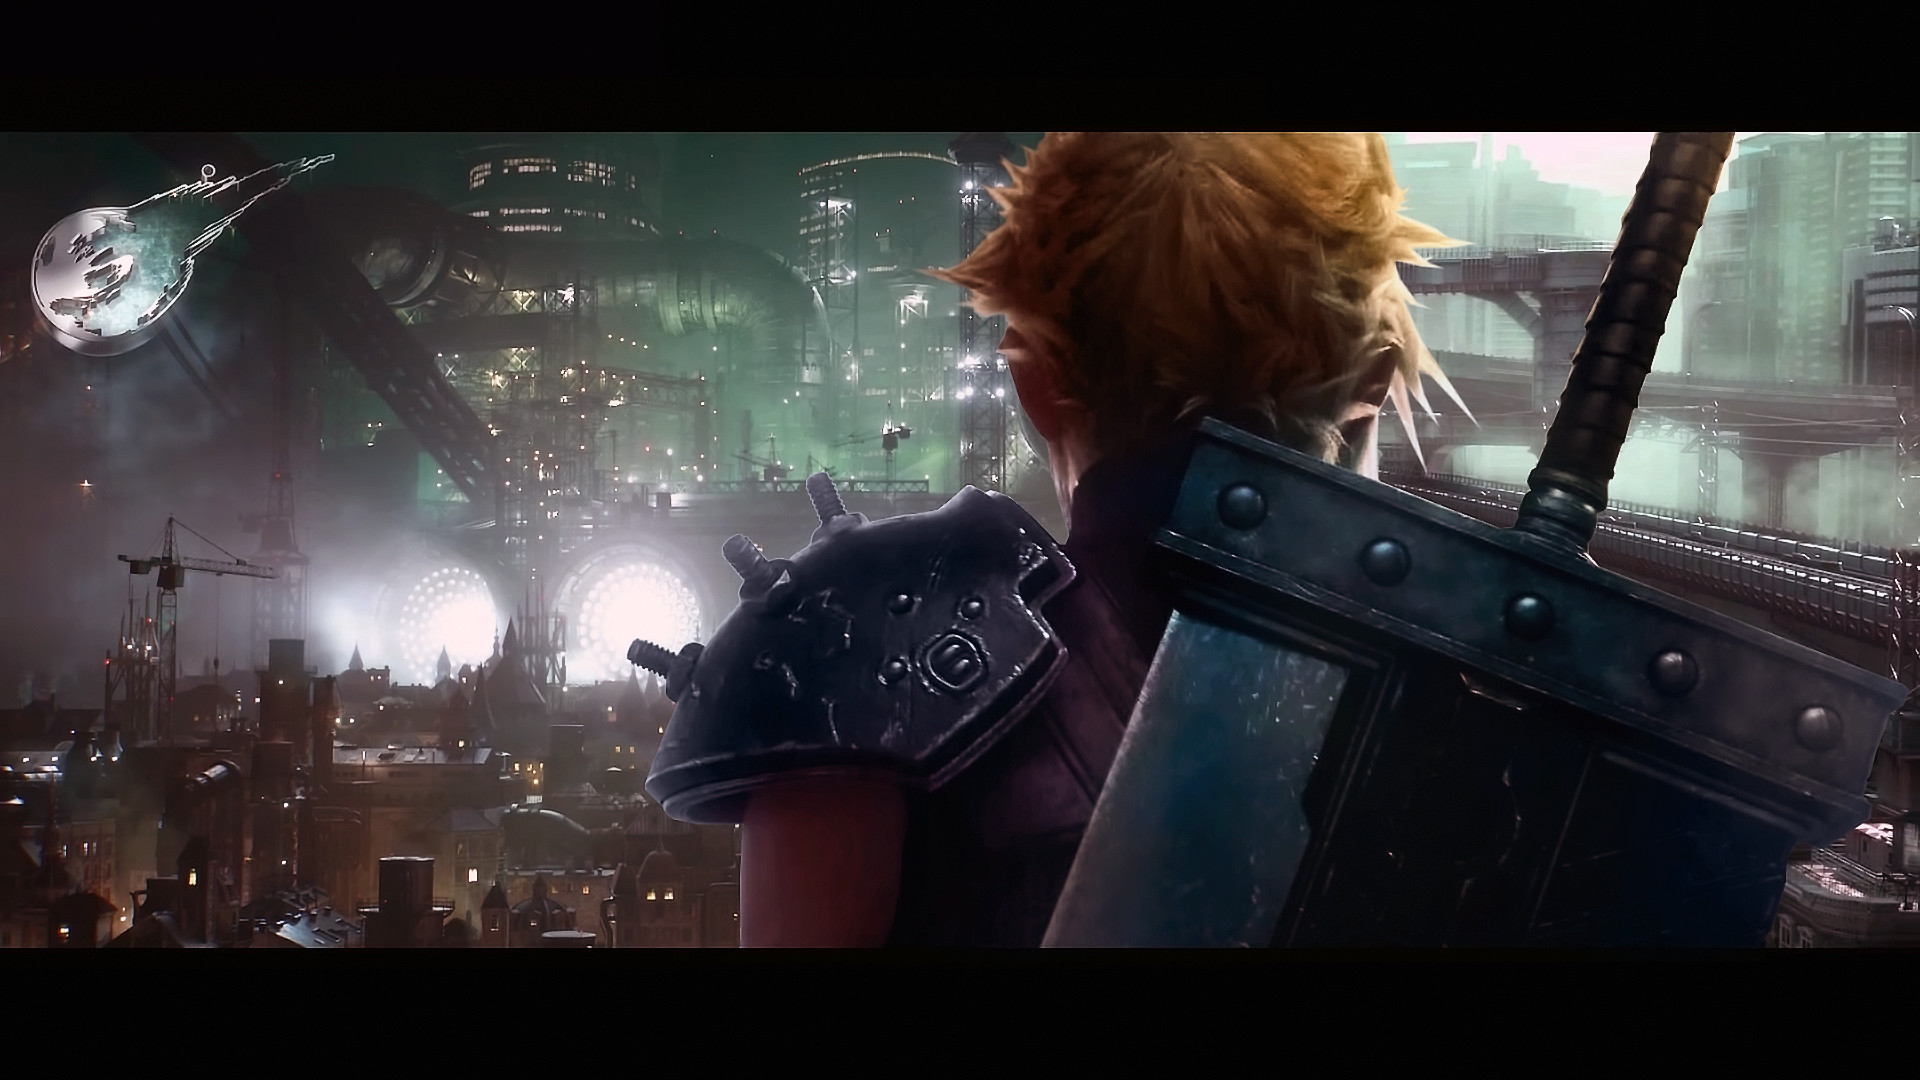 Final Fantasy 7 Remake Wallpaper 84 Images